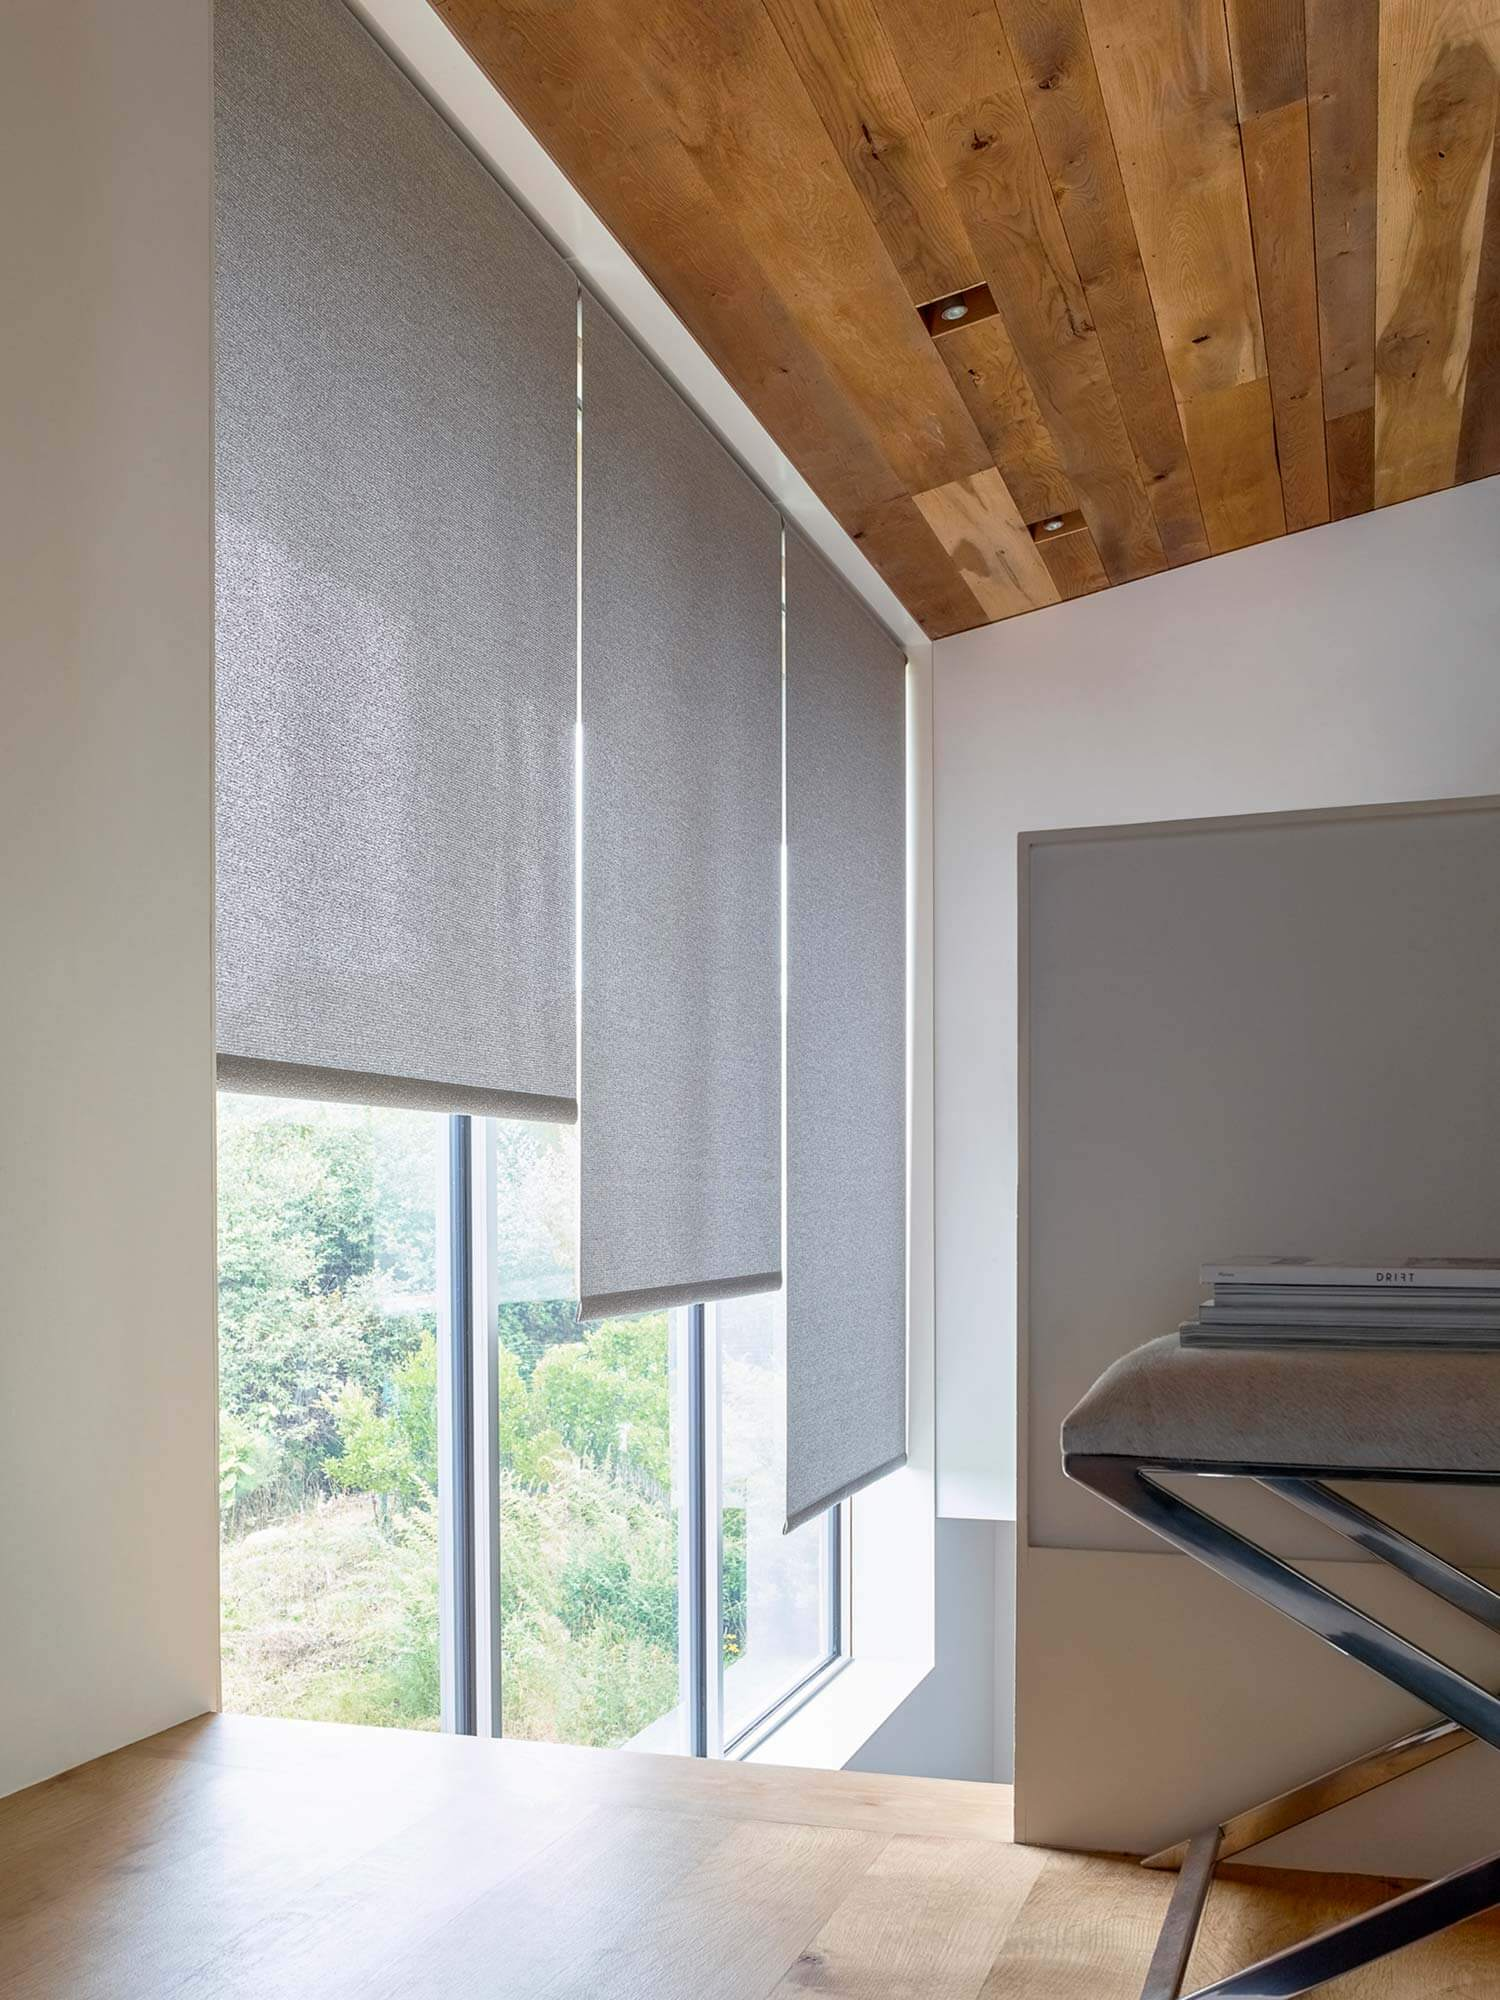 Solar shades offer a beautiful look while providing UV protection and glare reduction